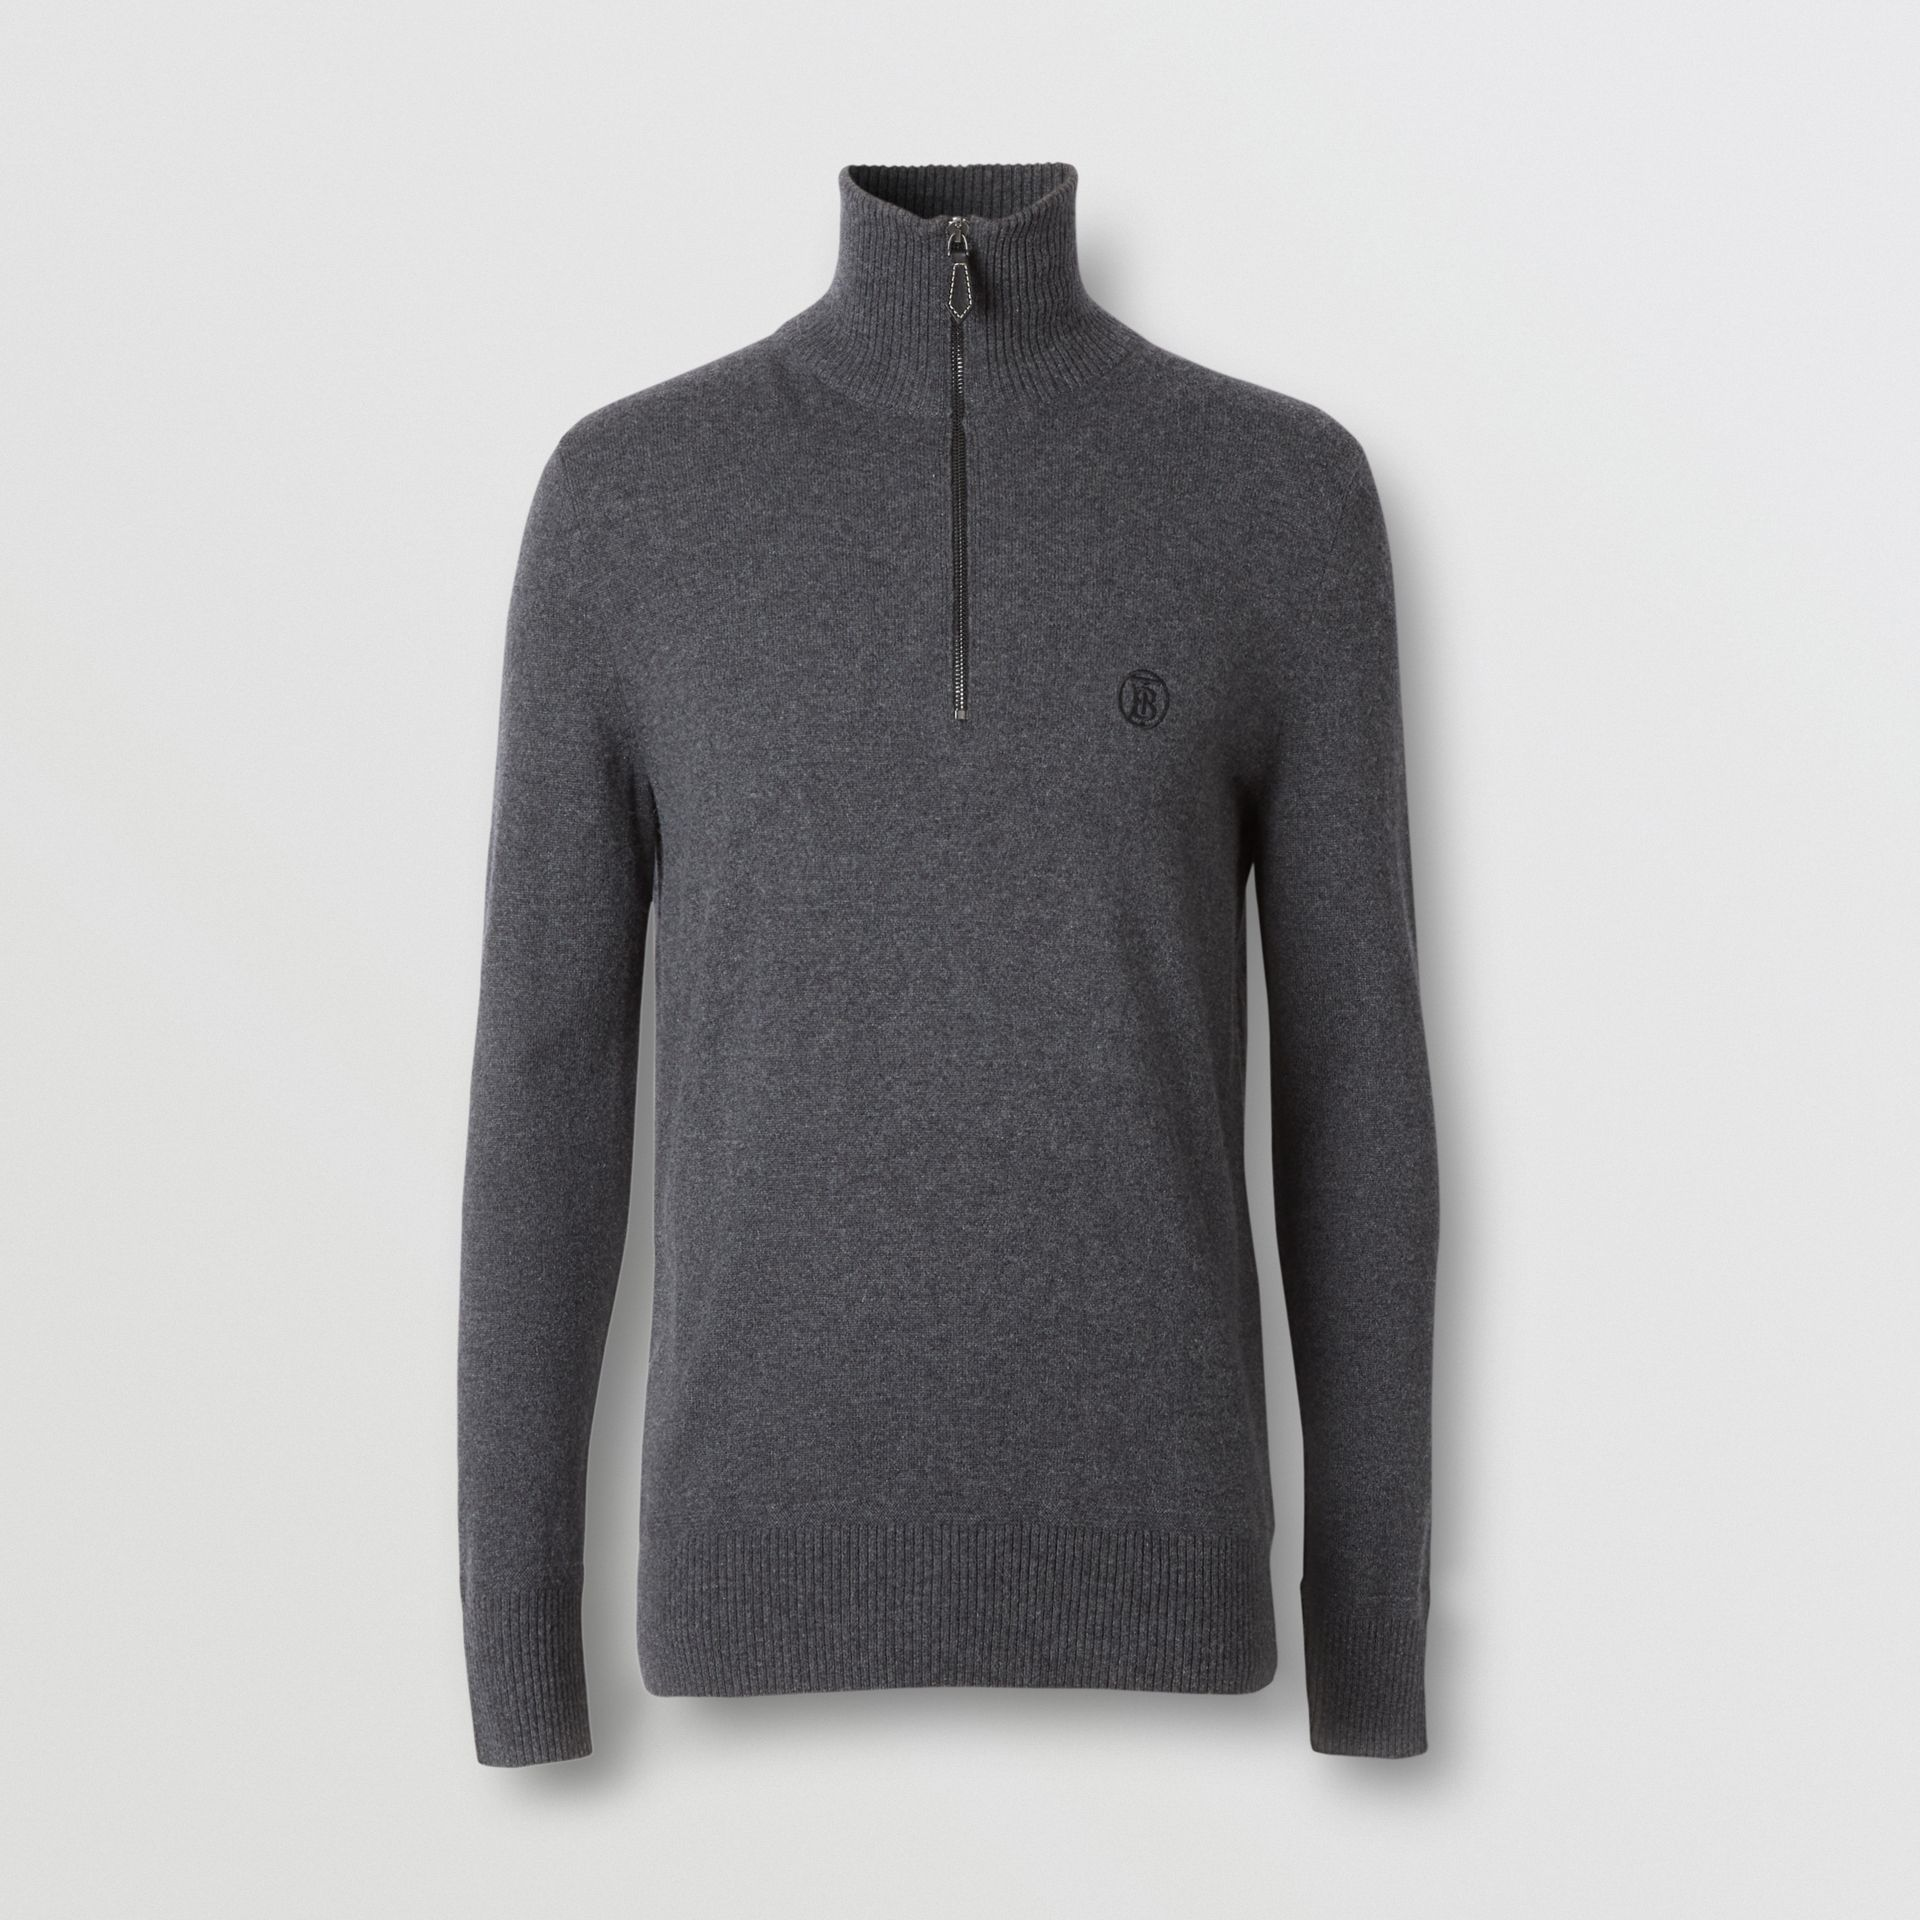 Monogram Motif Cashmere Funnel Neck Sweater in Steel Grey - Men | Burberry - gallery image 3